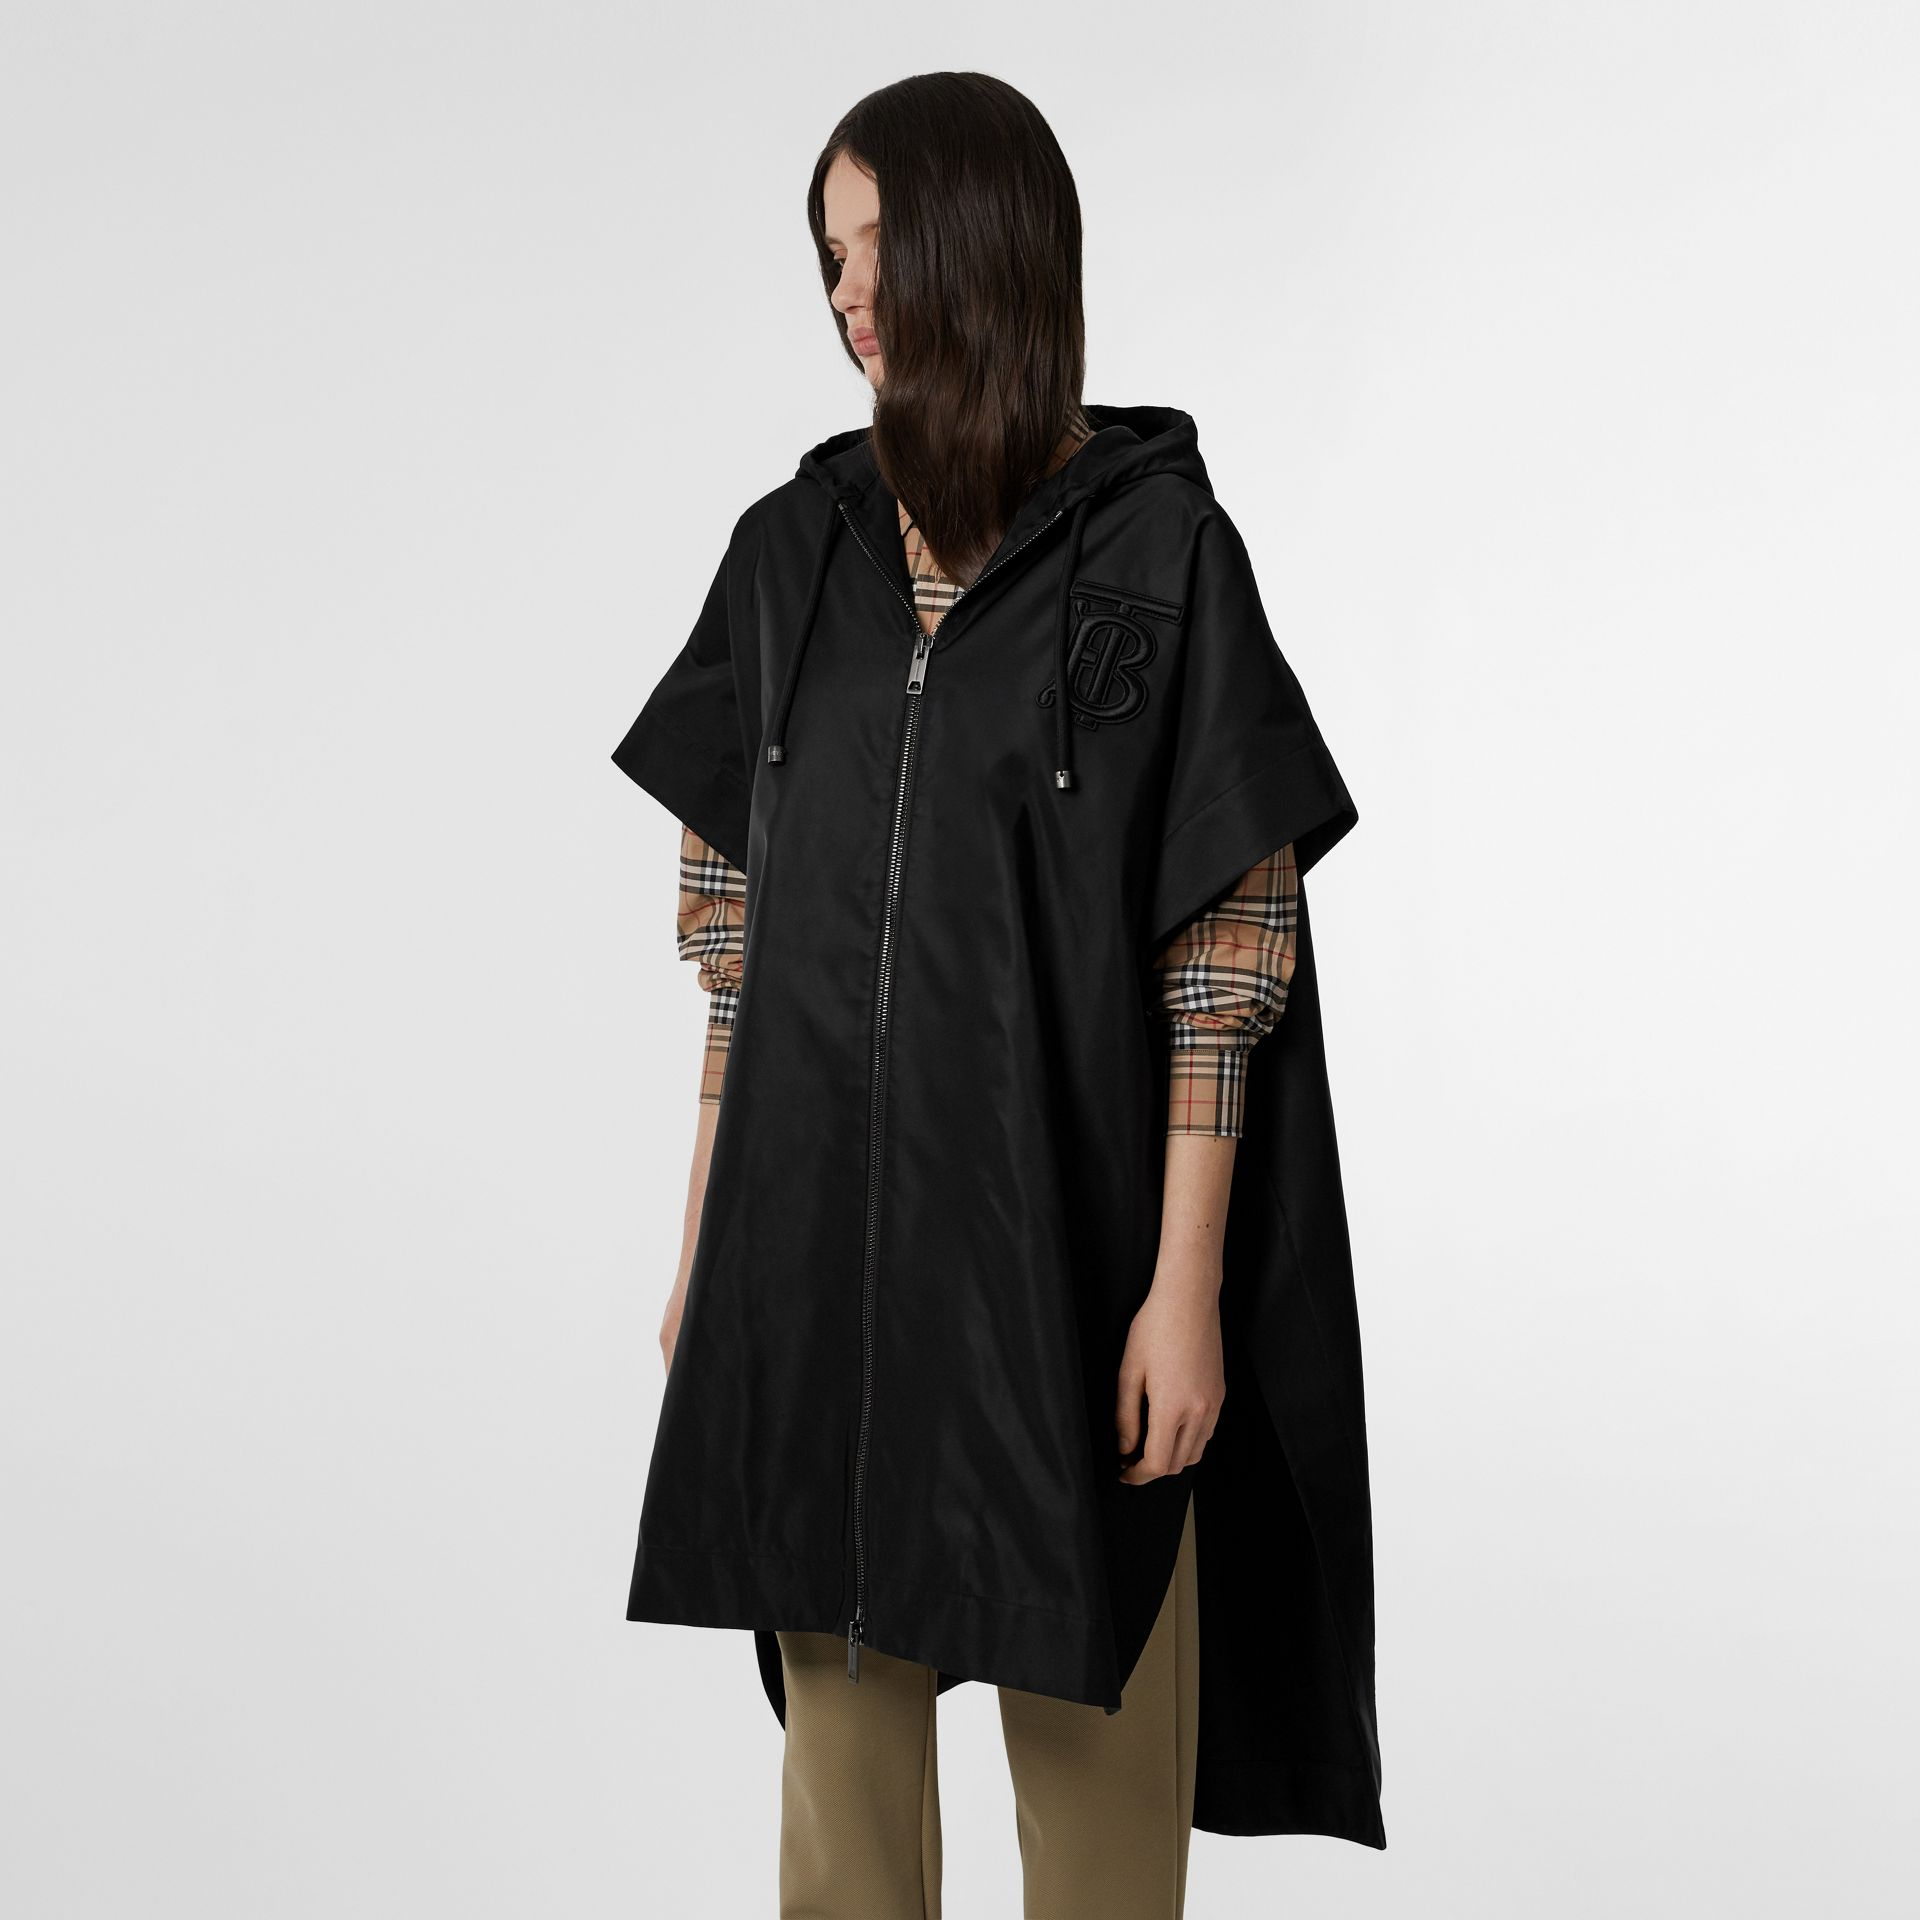 Monogram Motif Nylon Oversized Hooded Poncho in Black | Burberry - gallery image 10